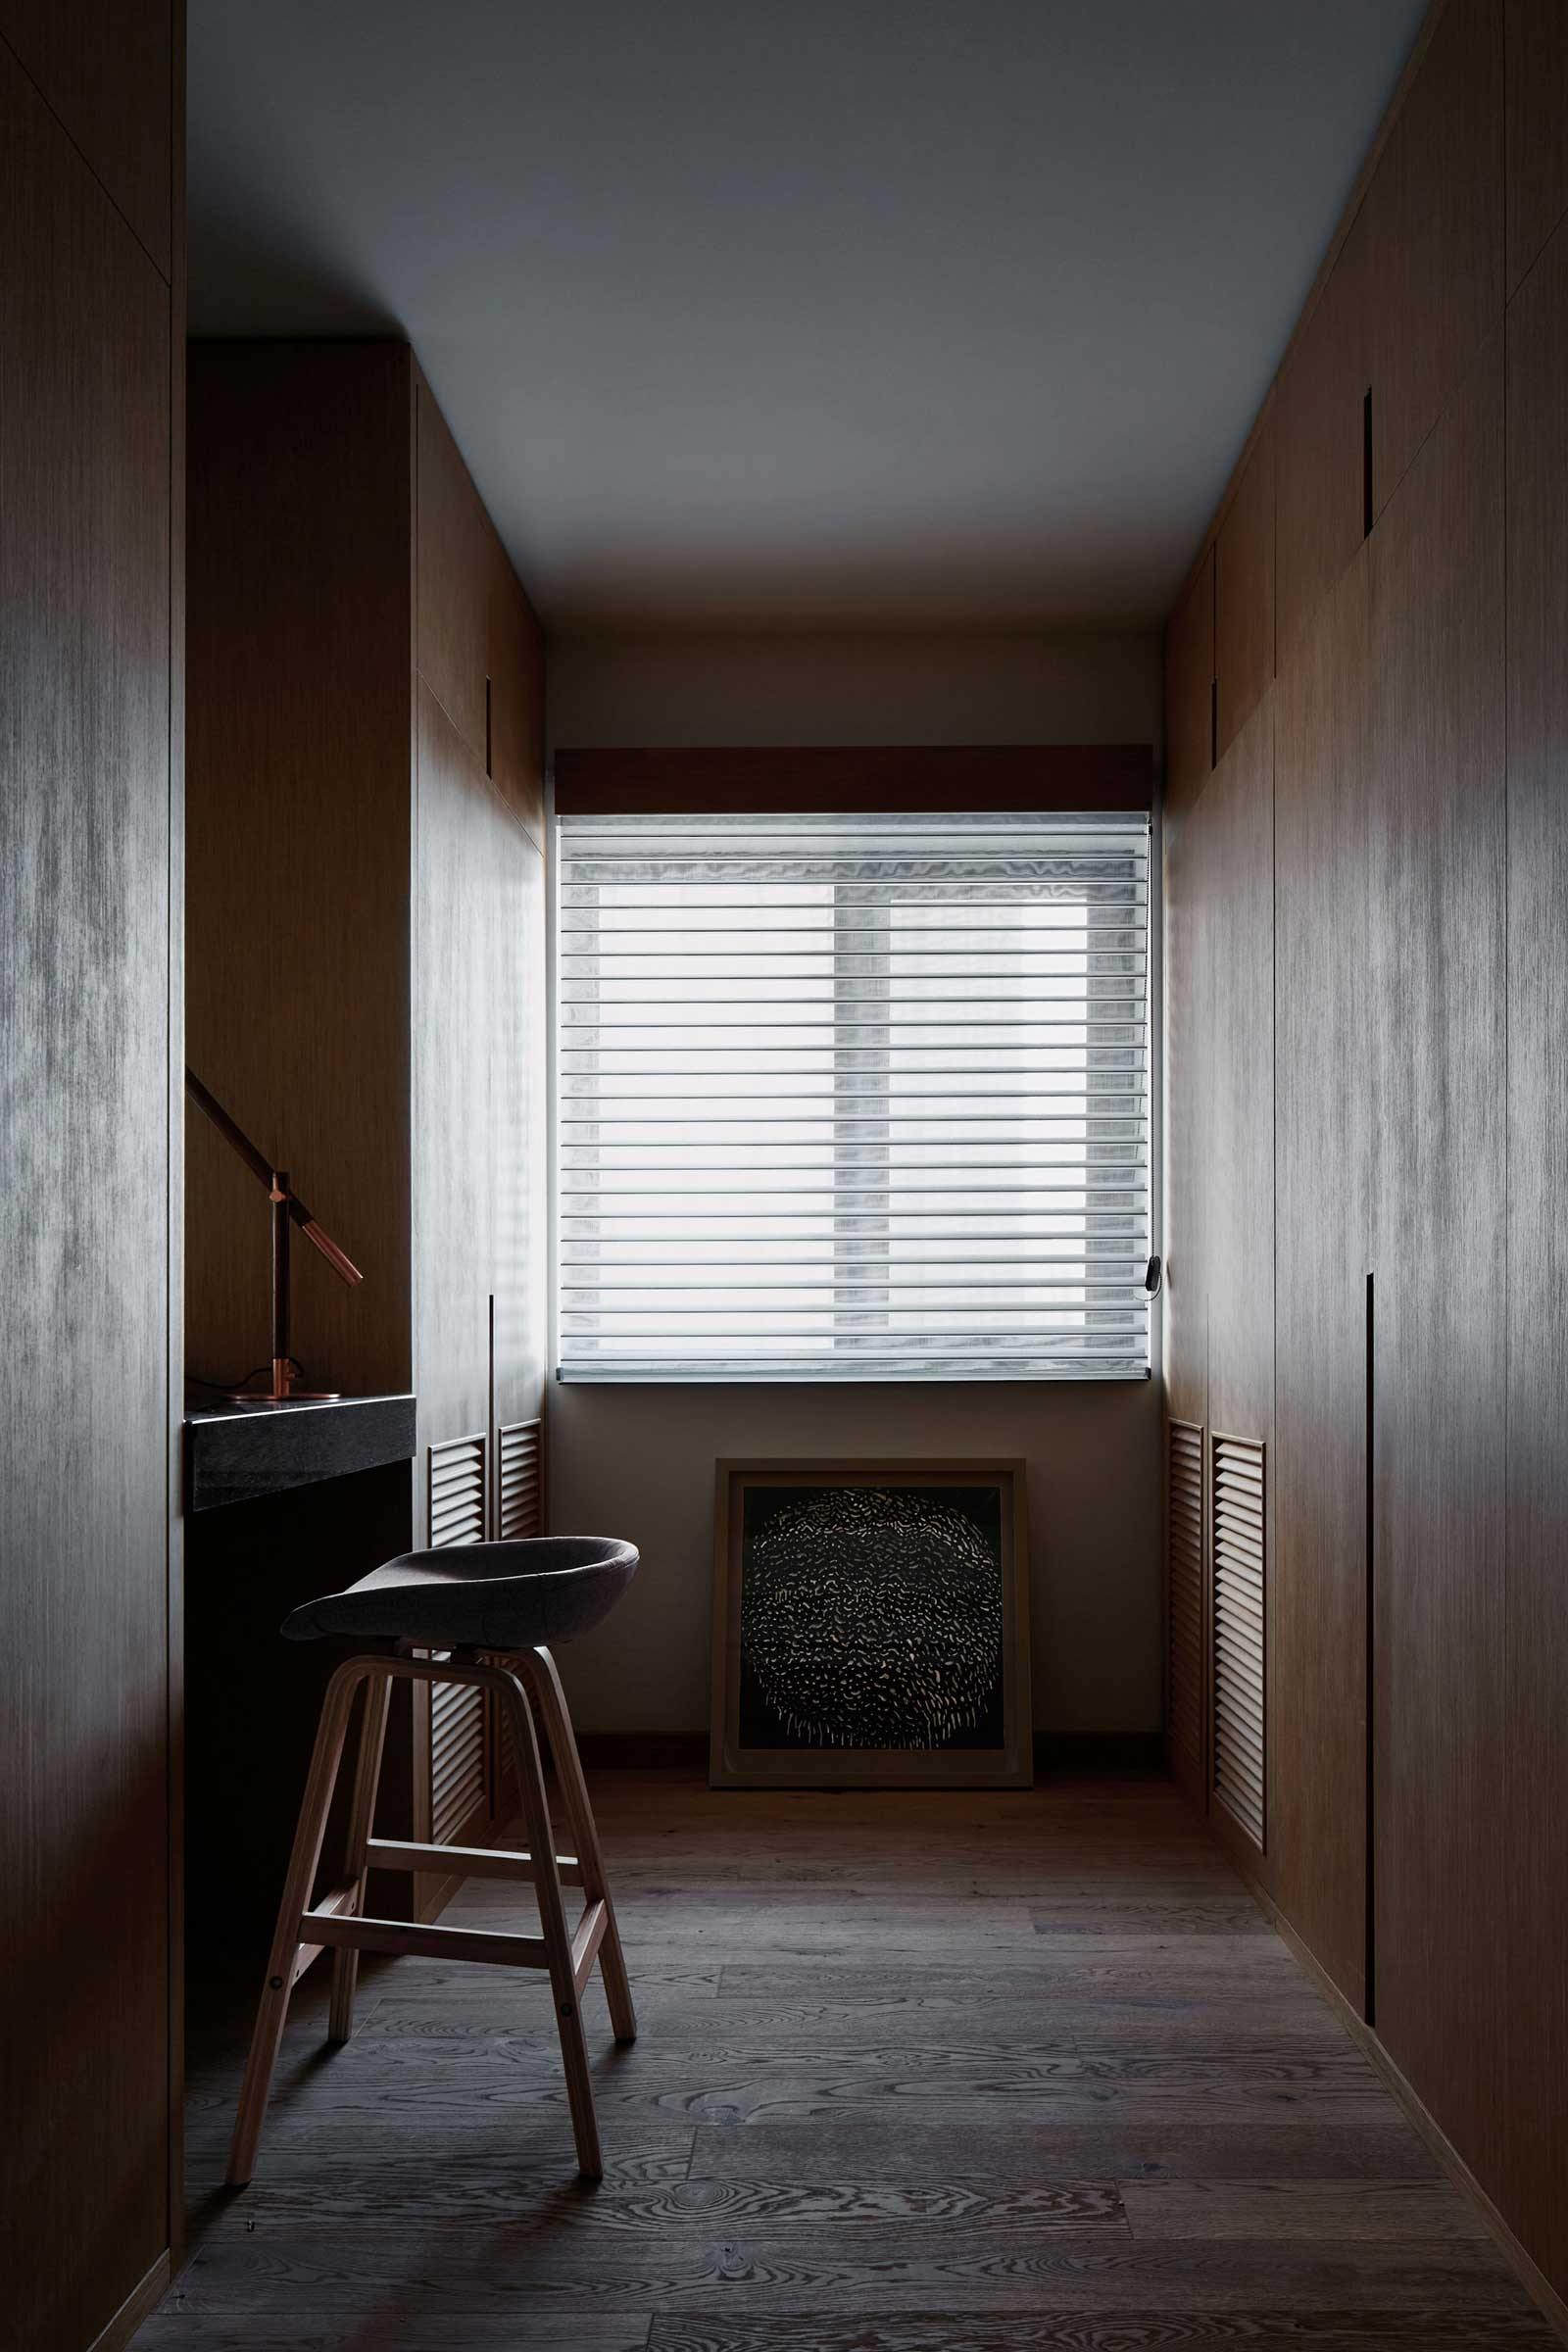 lane-house-ARCHISTRY-nolan-chao-14-fitting-room.jpg